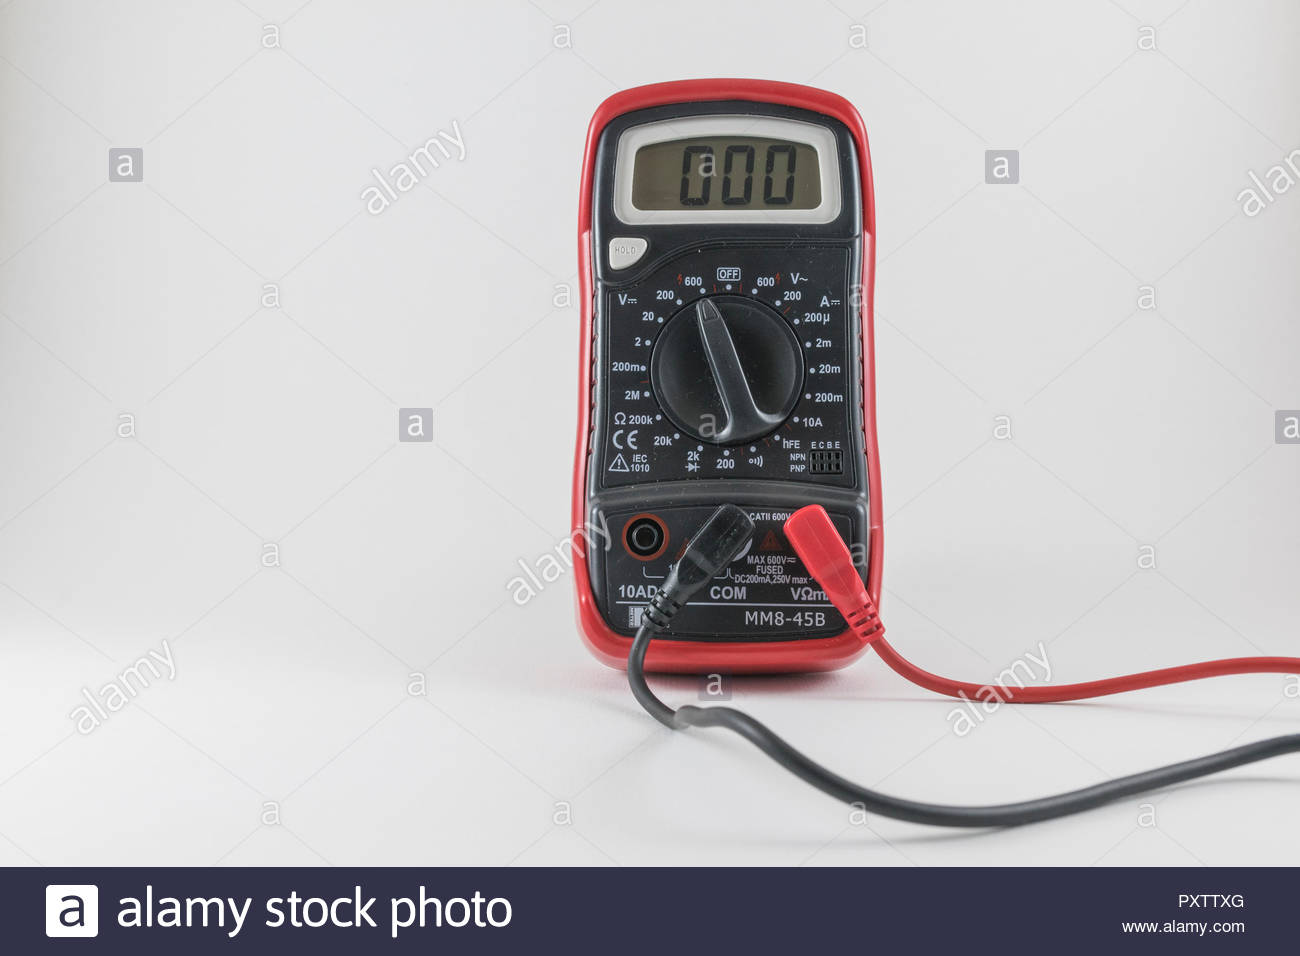 Electronic multimeter for measuring voltage, current and electrical resistance - Stock Image